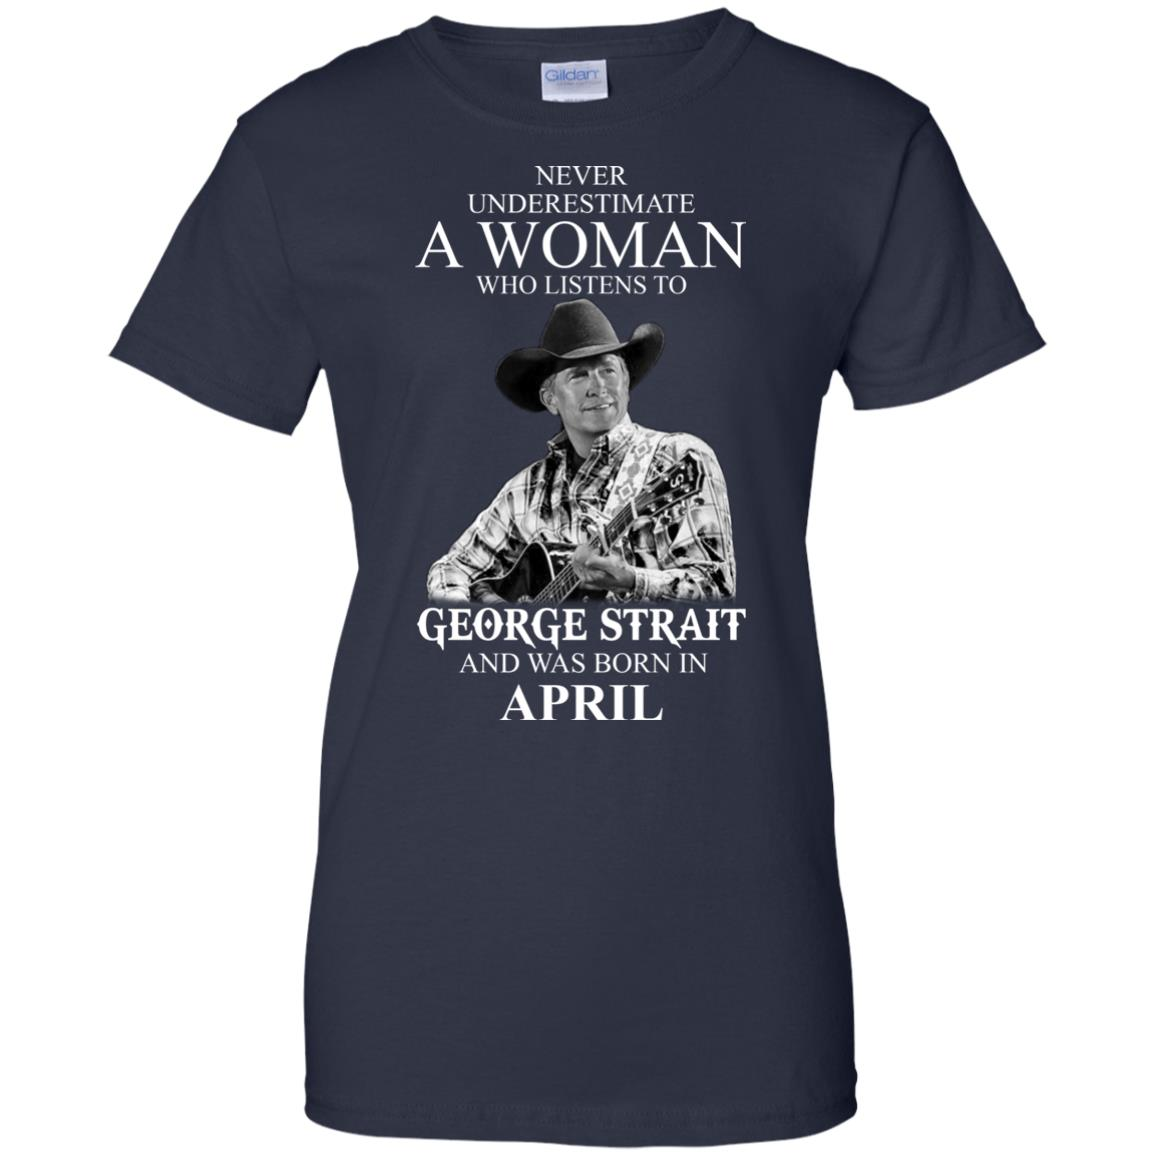 image 433 - Never Underestimate A Woman Who Listens To George Strait And Was Born In April shirt